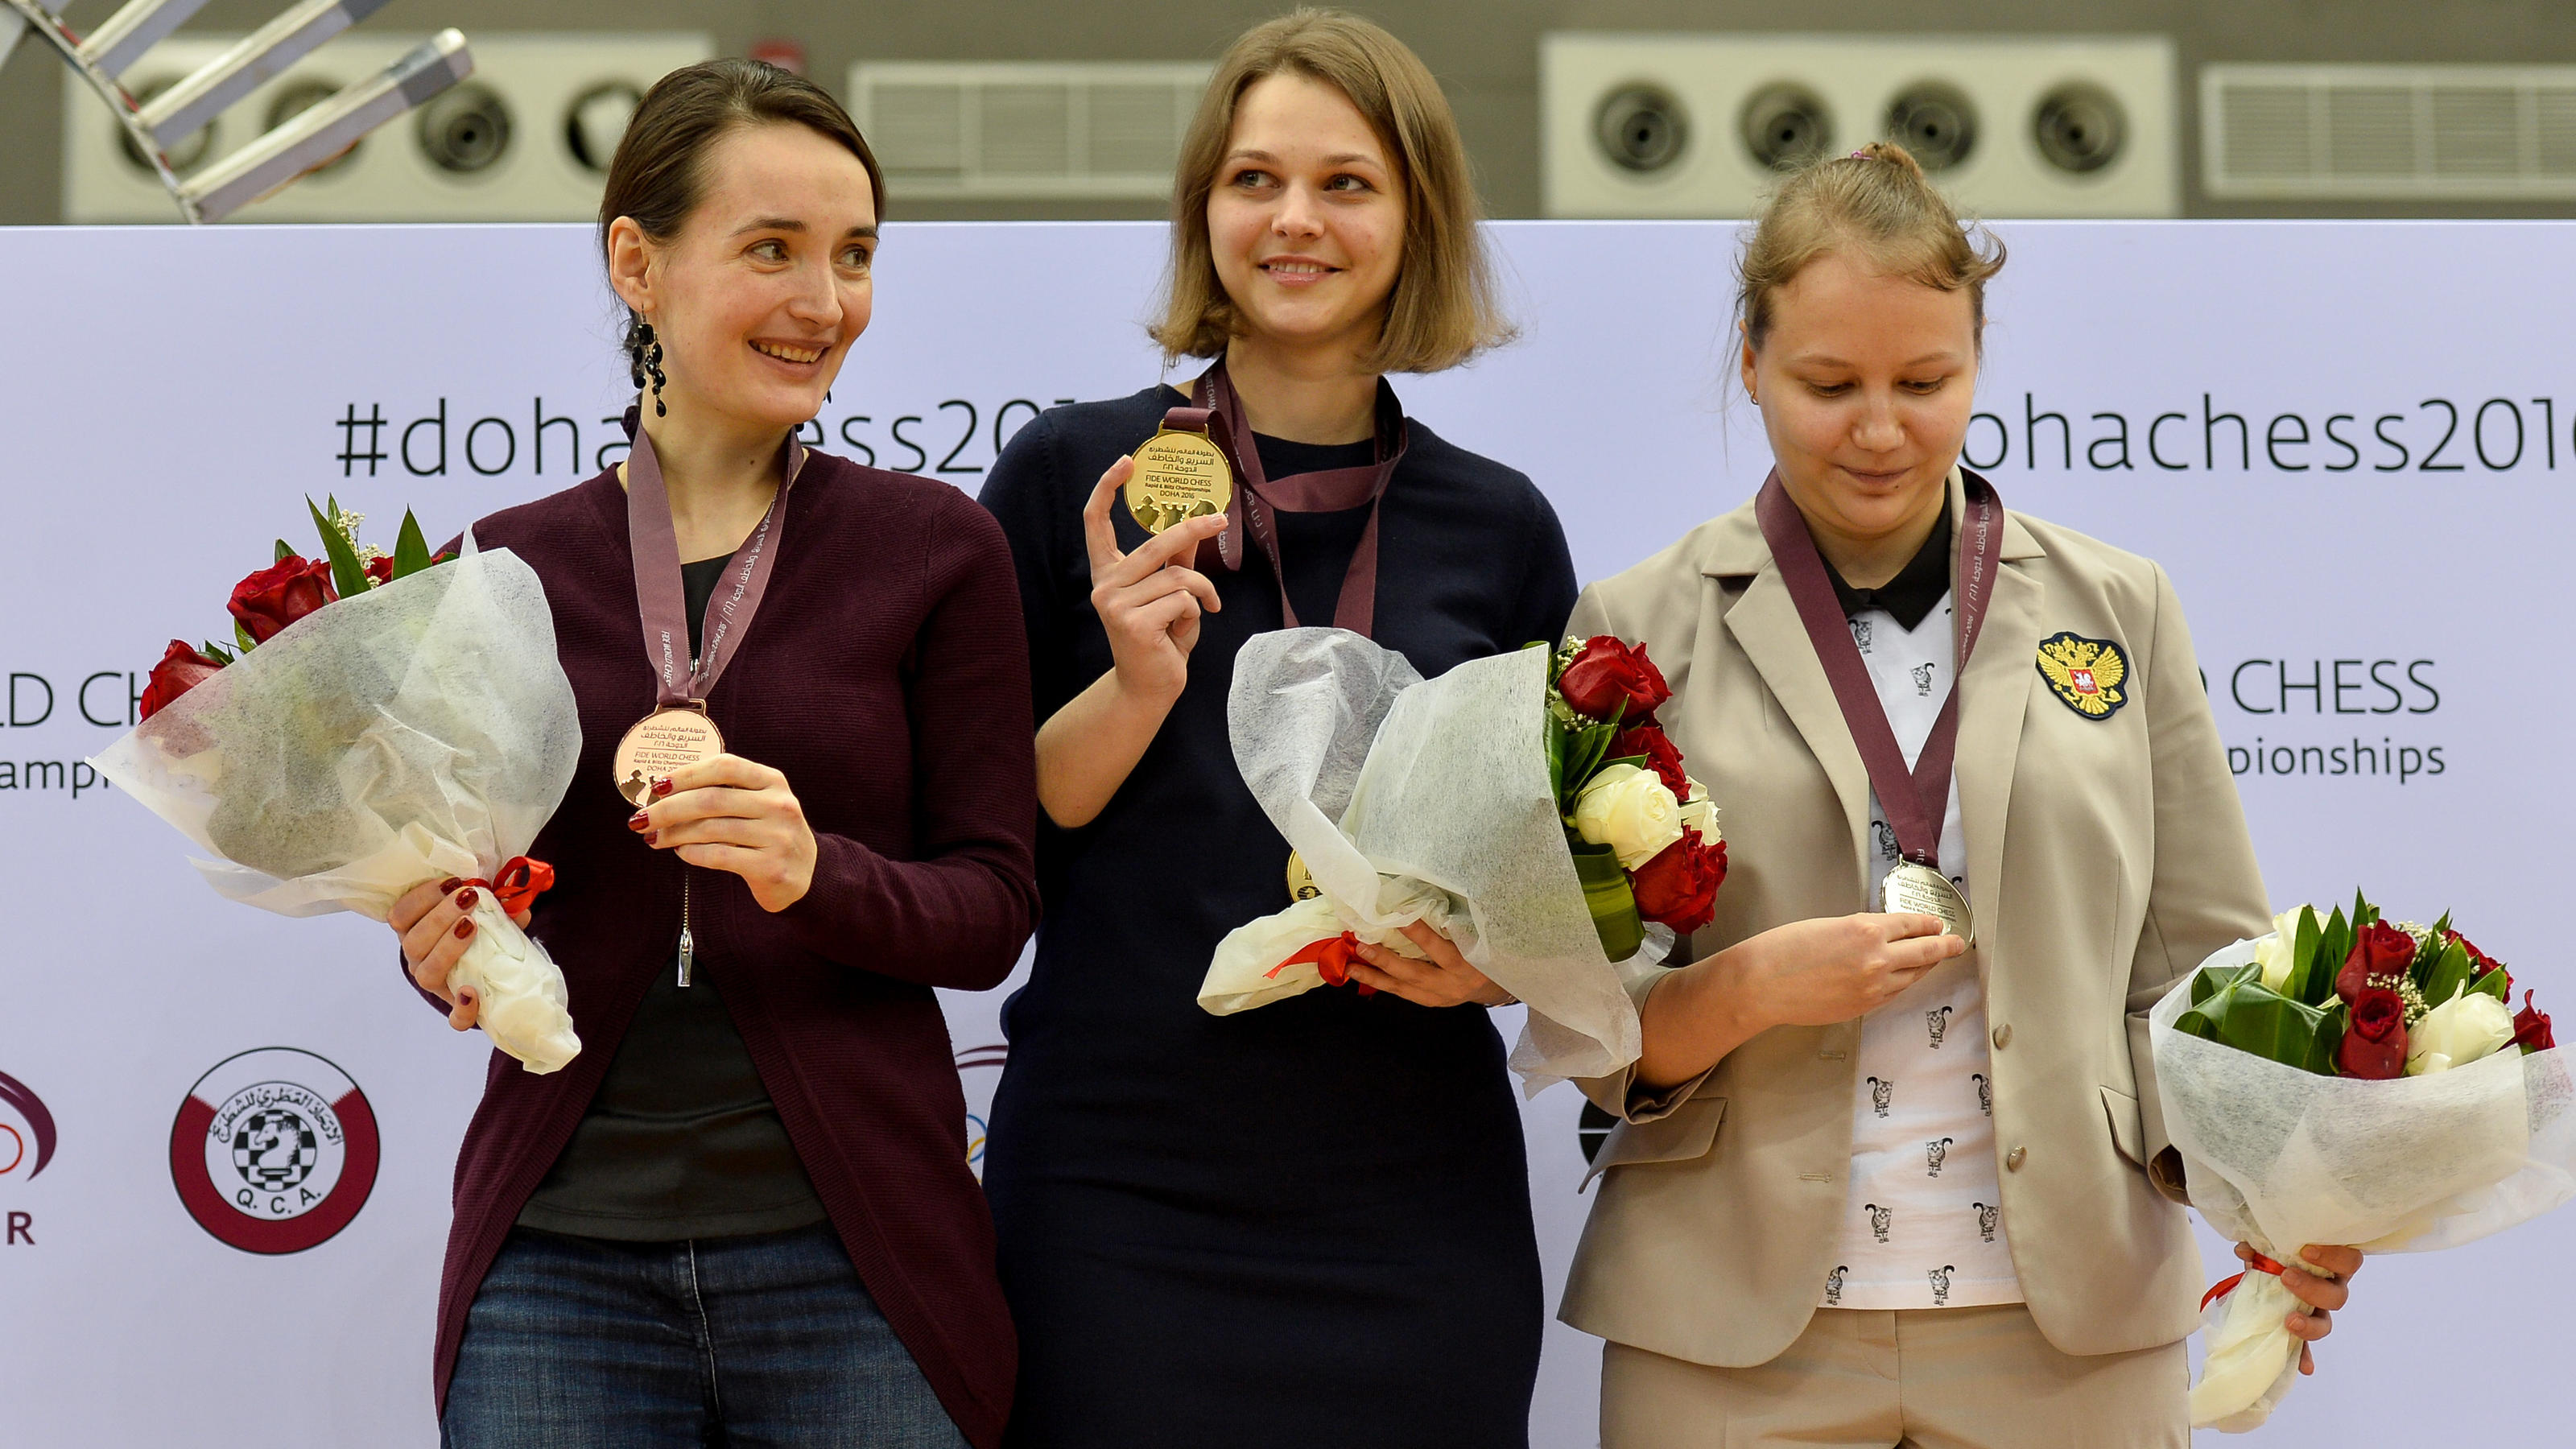 DOHA Dec. 31 2016 ()- Bronze medalist Kateryna Lagno of Russia gold medalist Anna Muzychuk of Ukraine and silver medalist Valentina Gunina of Russia pose on the podium at the medal ceremony for the Women's Blitz Champio